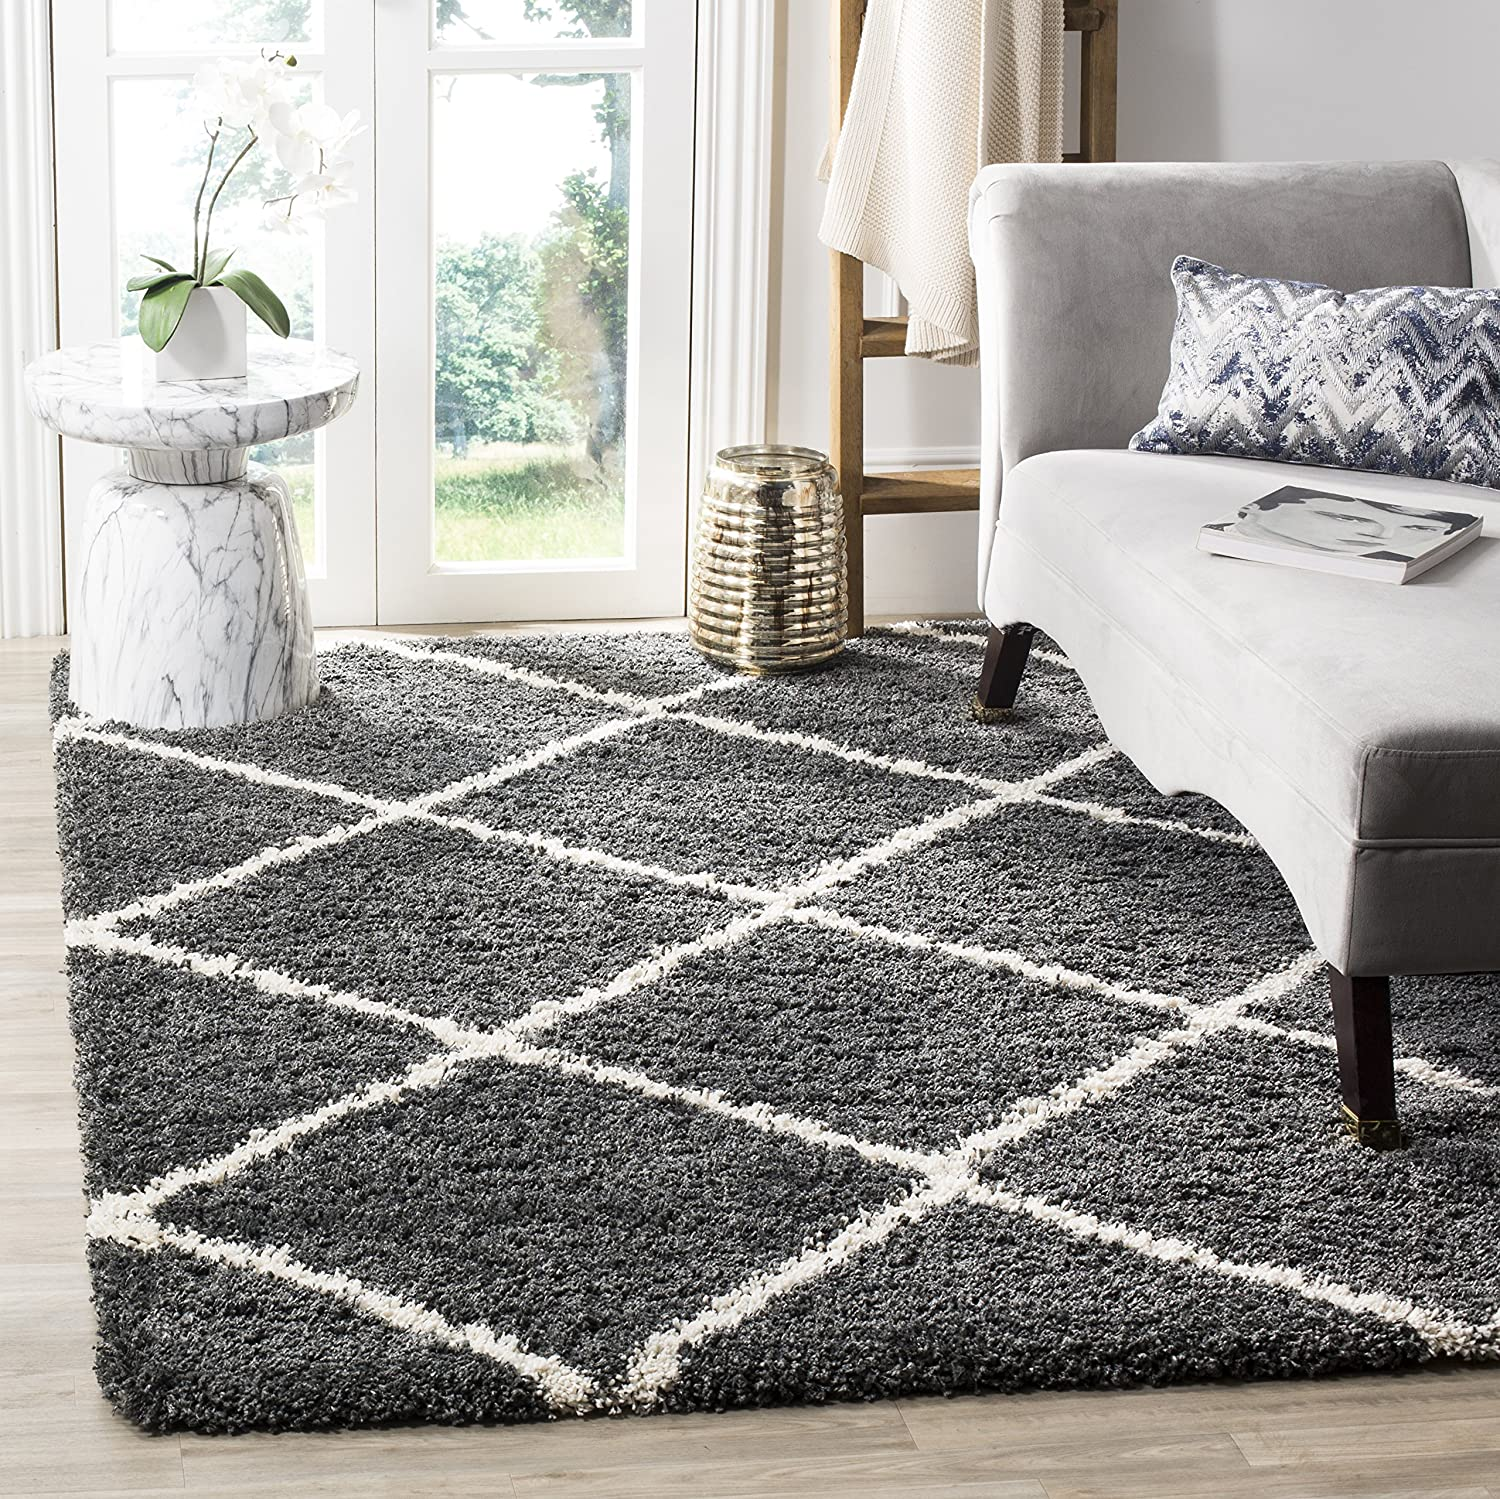 Safavieh Hudson Shag Collection SGH281G Diamond Trellis 2-inch Thick Area Rug, 10' x 14', Dark Grey/Ivory